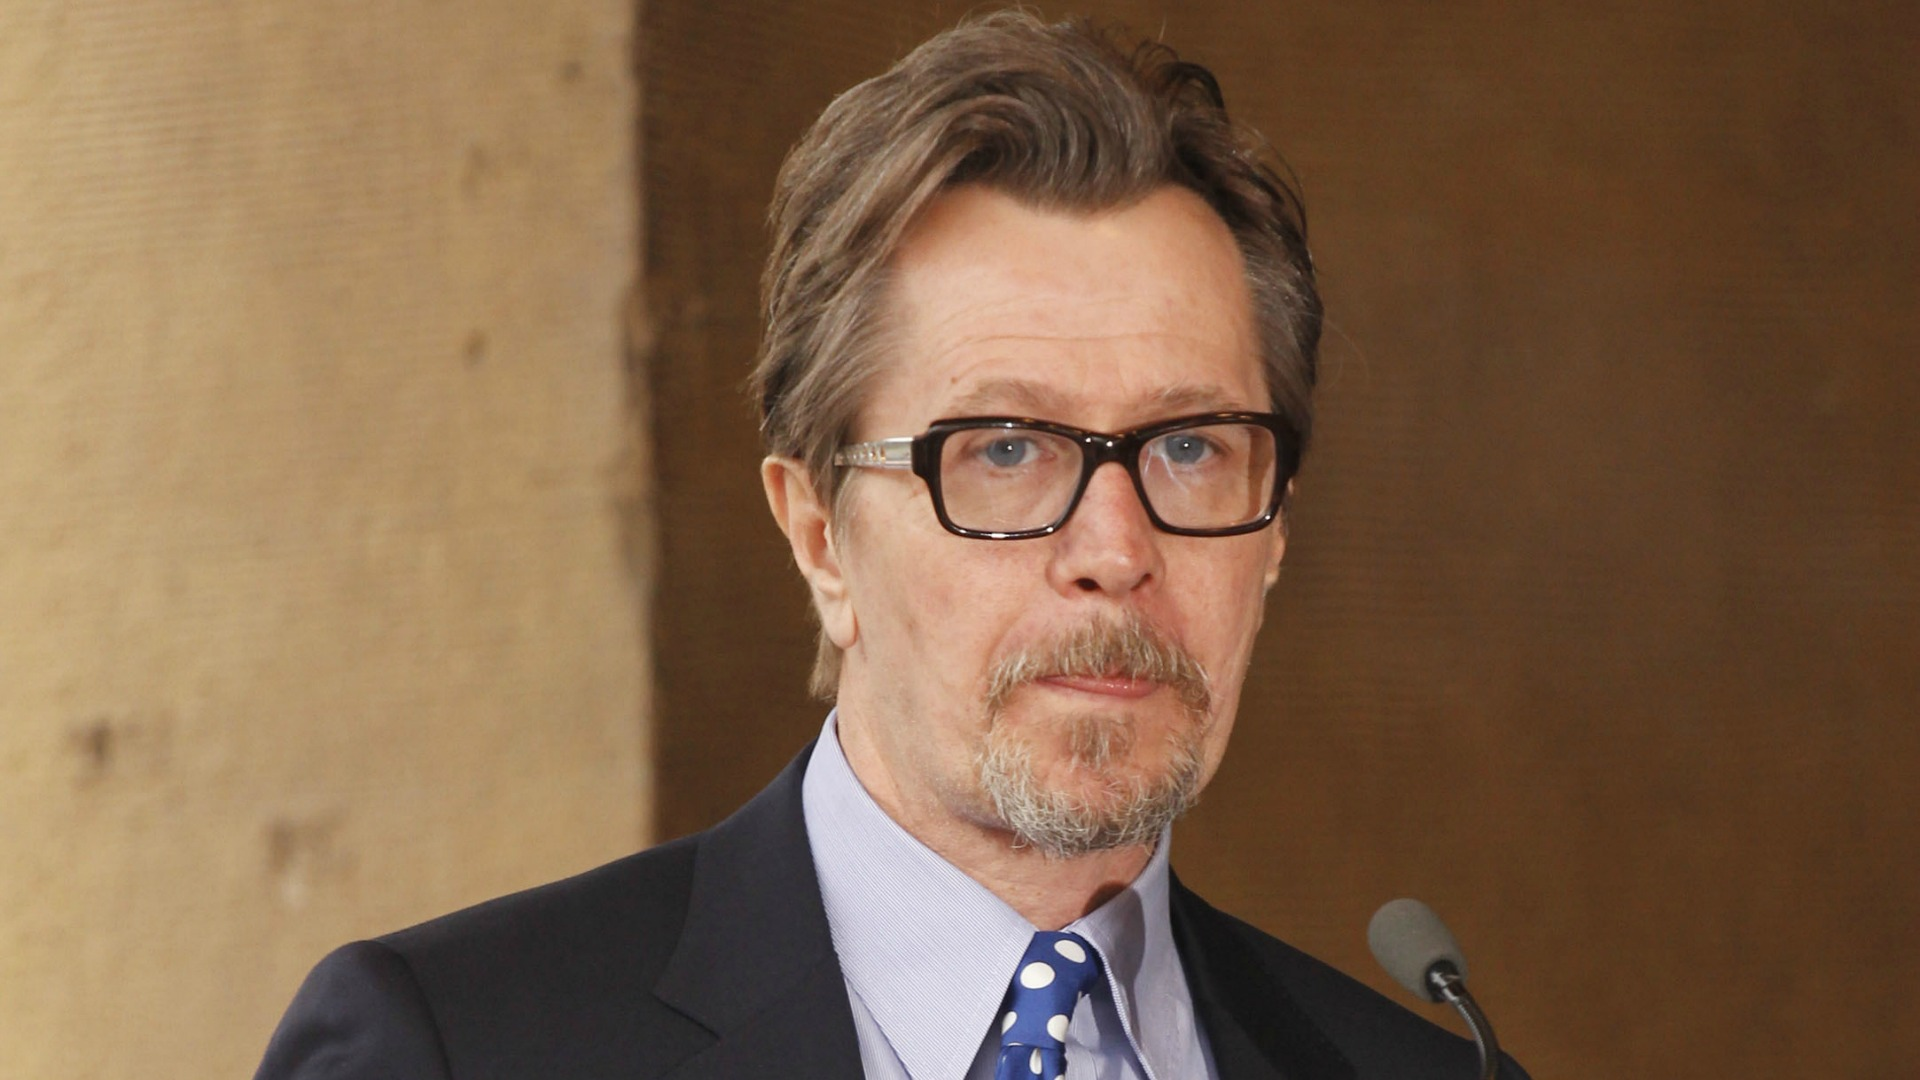 Gary Oldman Net Worth